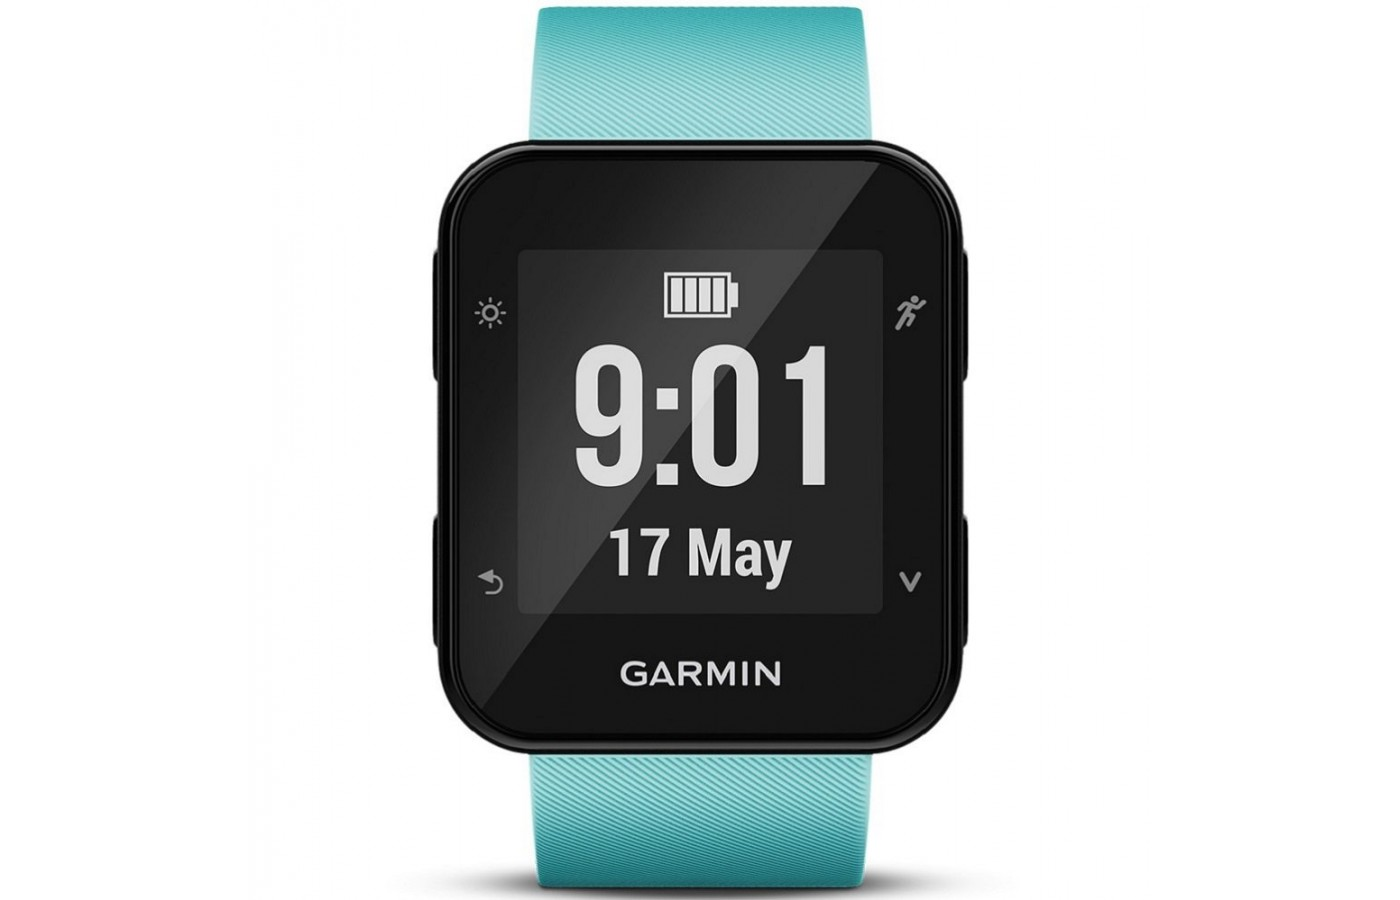 The Garmin Forerunner 35 is a GPS running watch that allows users to stay connected when they share their fitness progress.